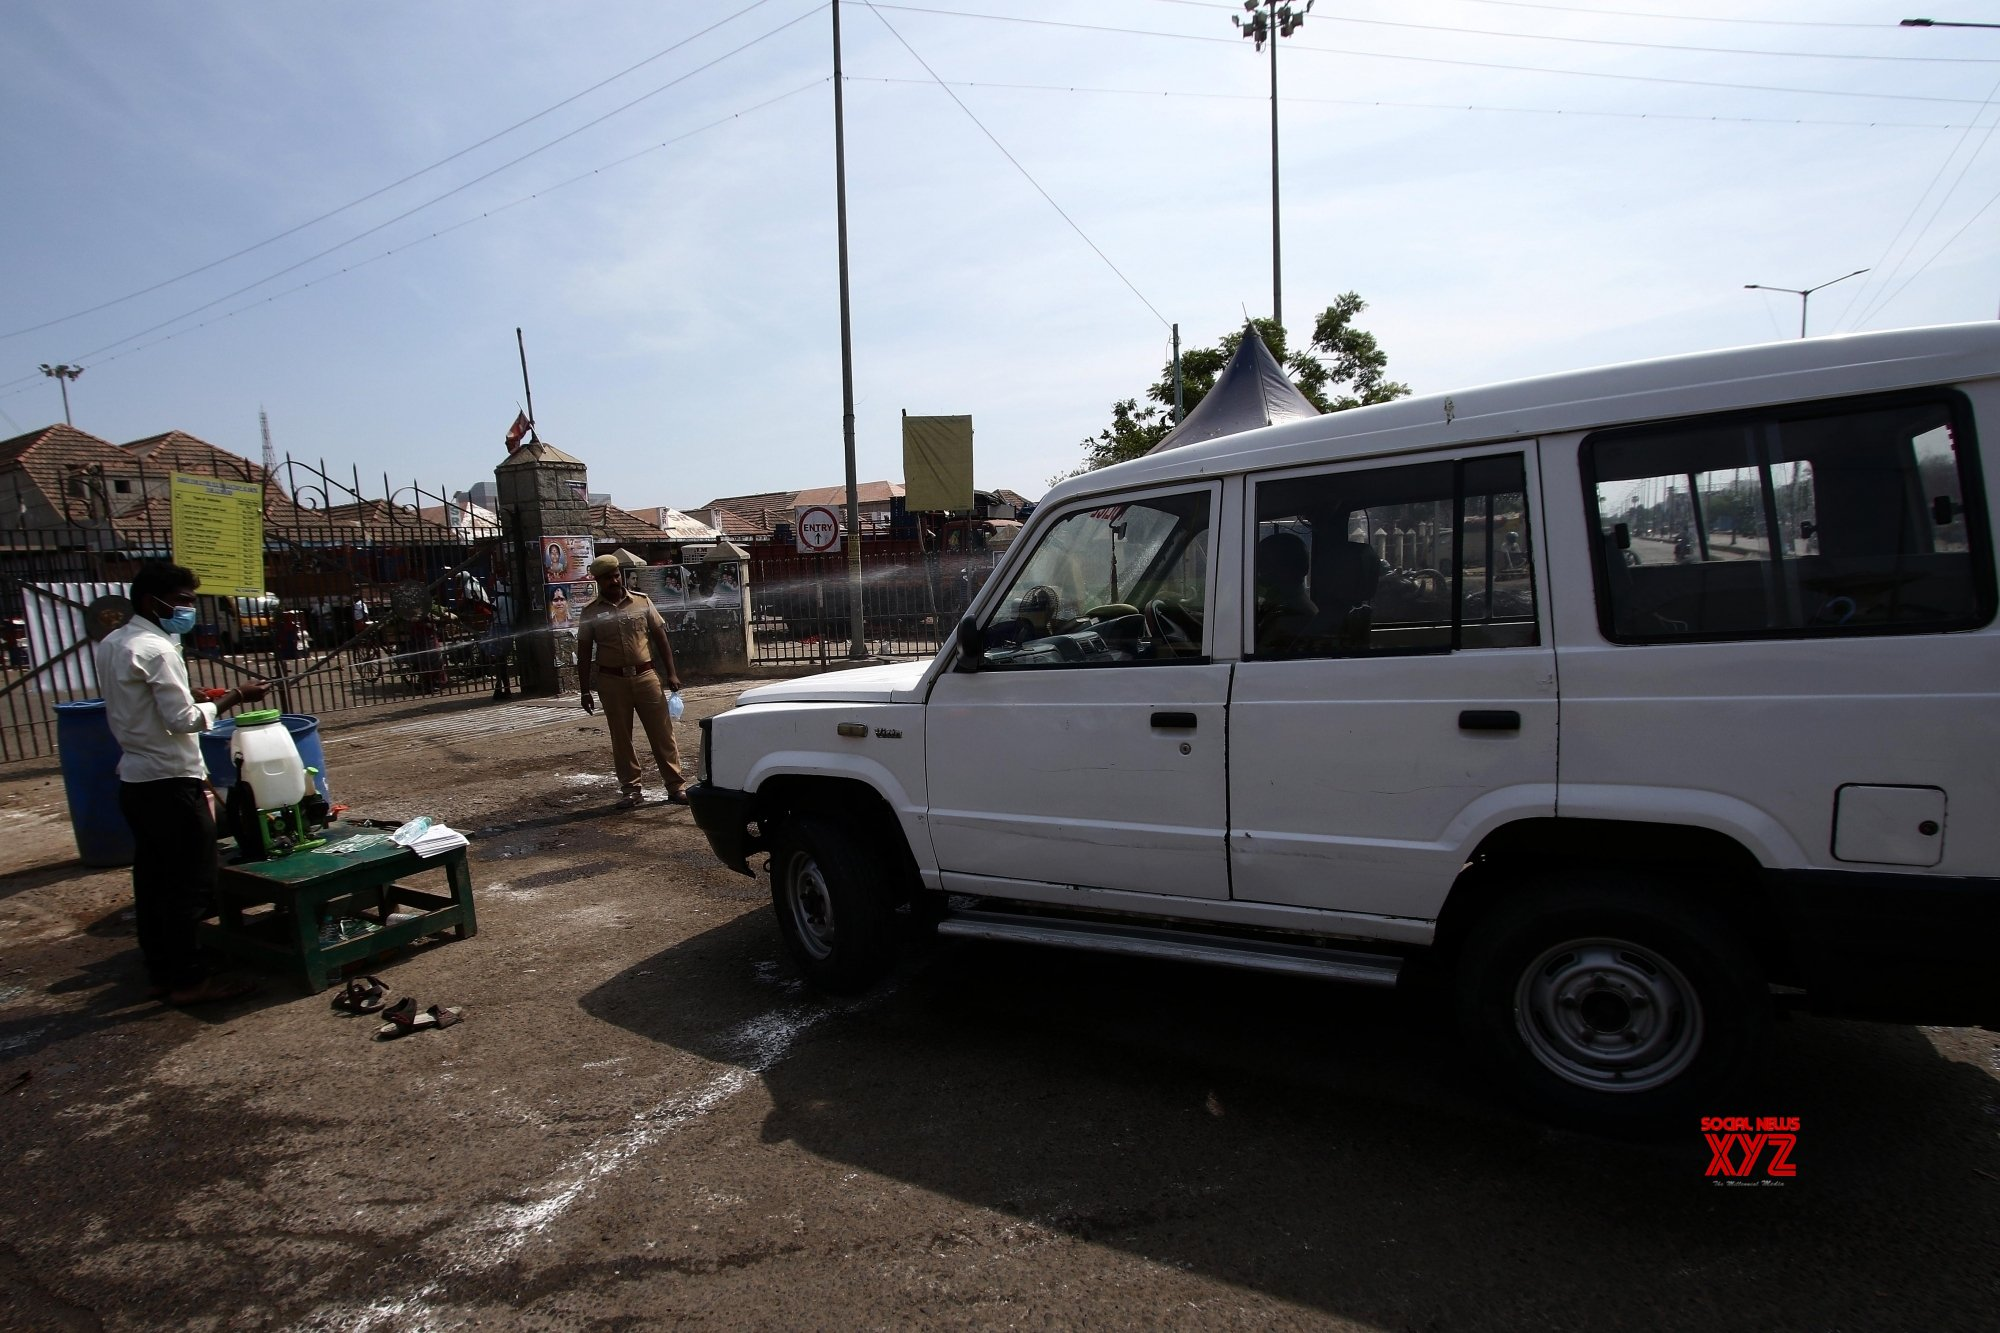 Chennai: City being disinfected amid lockdown #Gallery